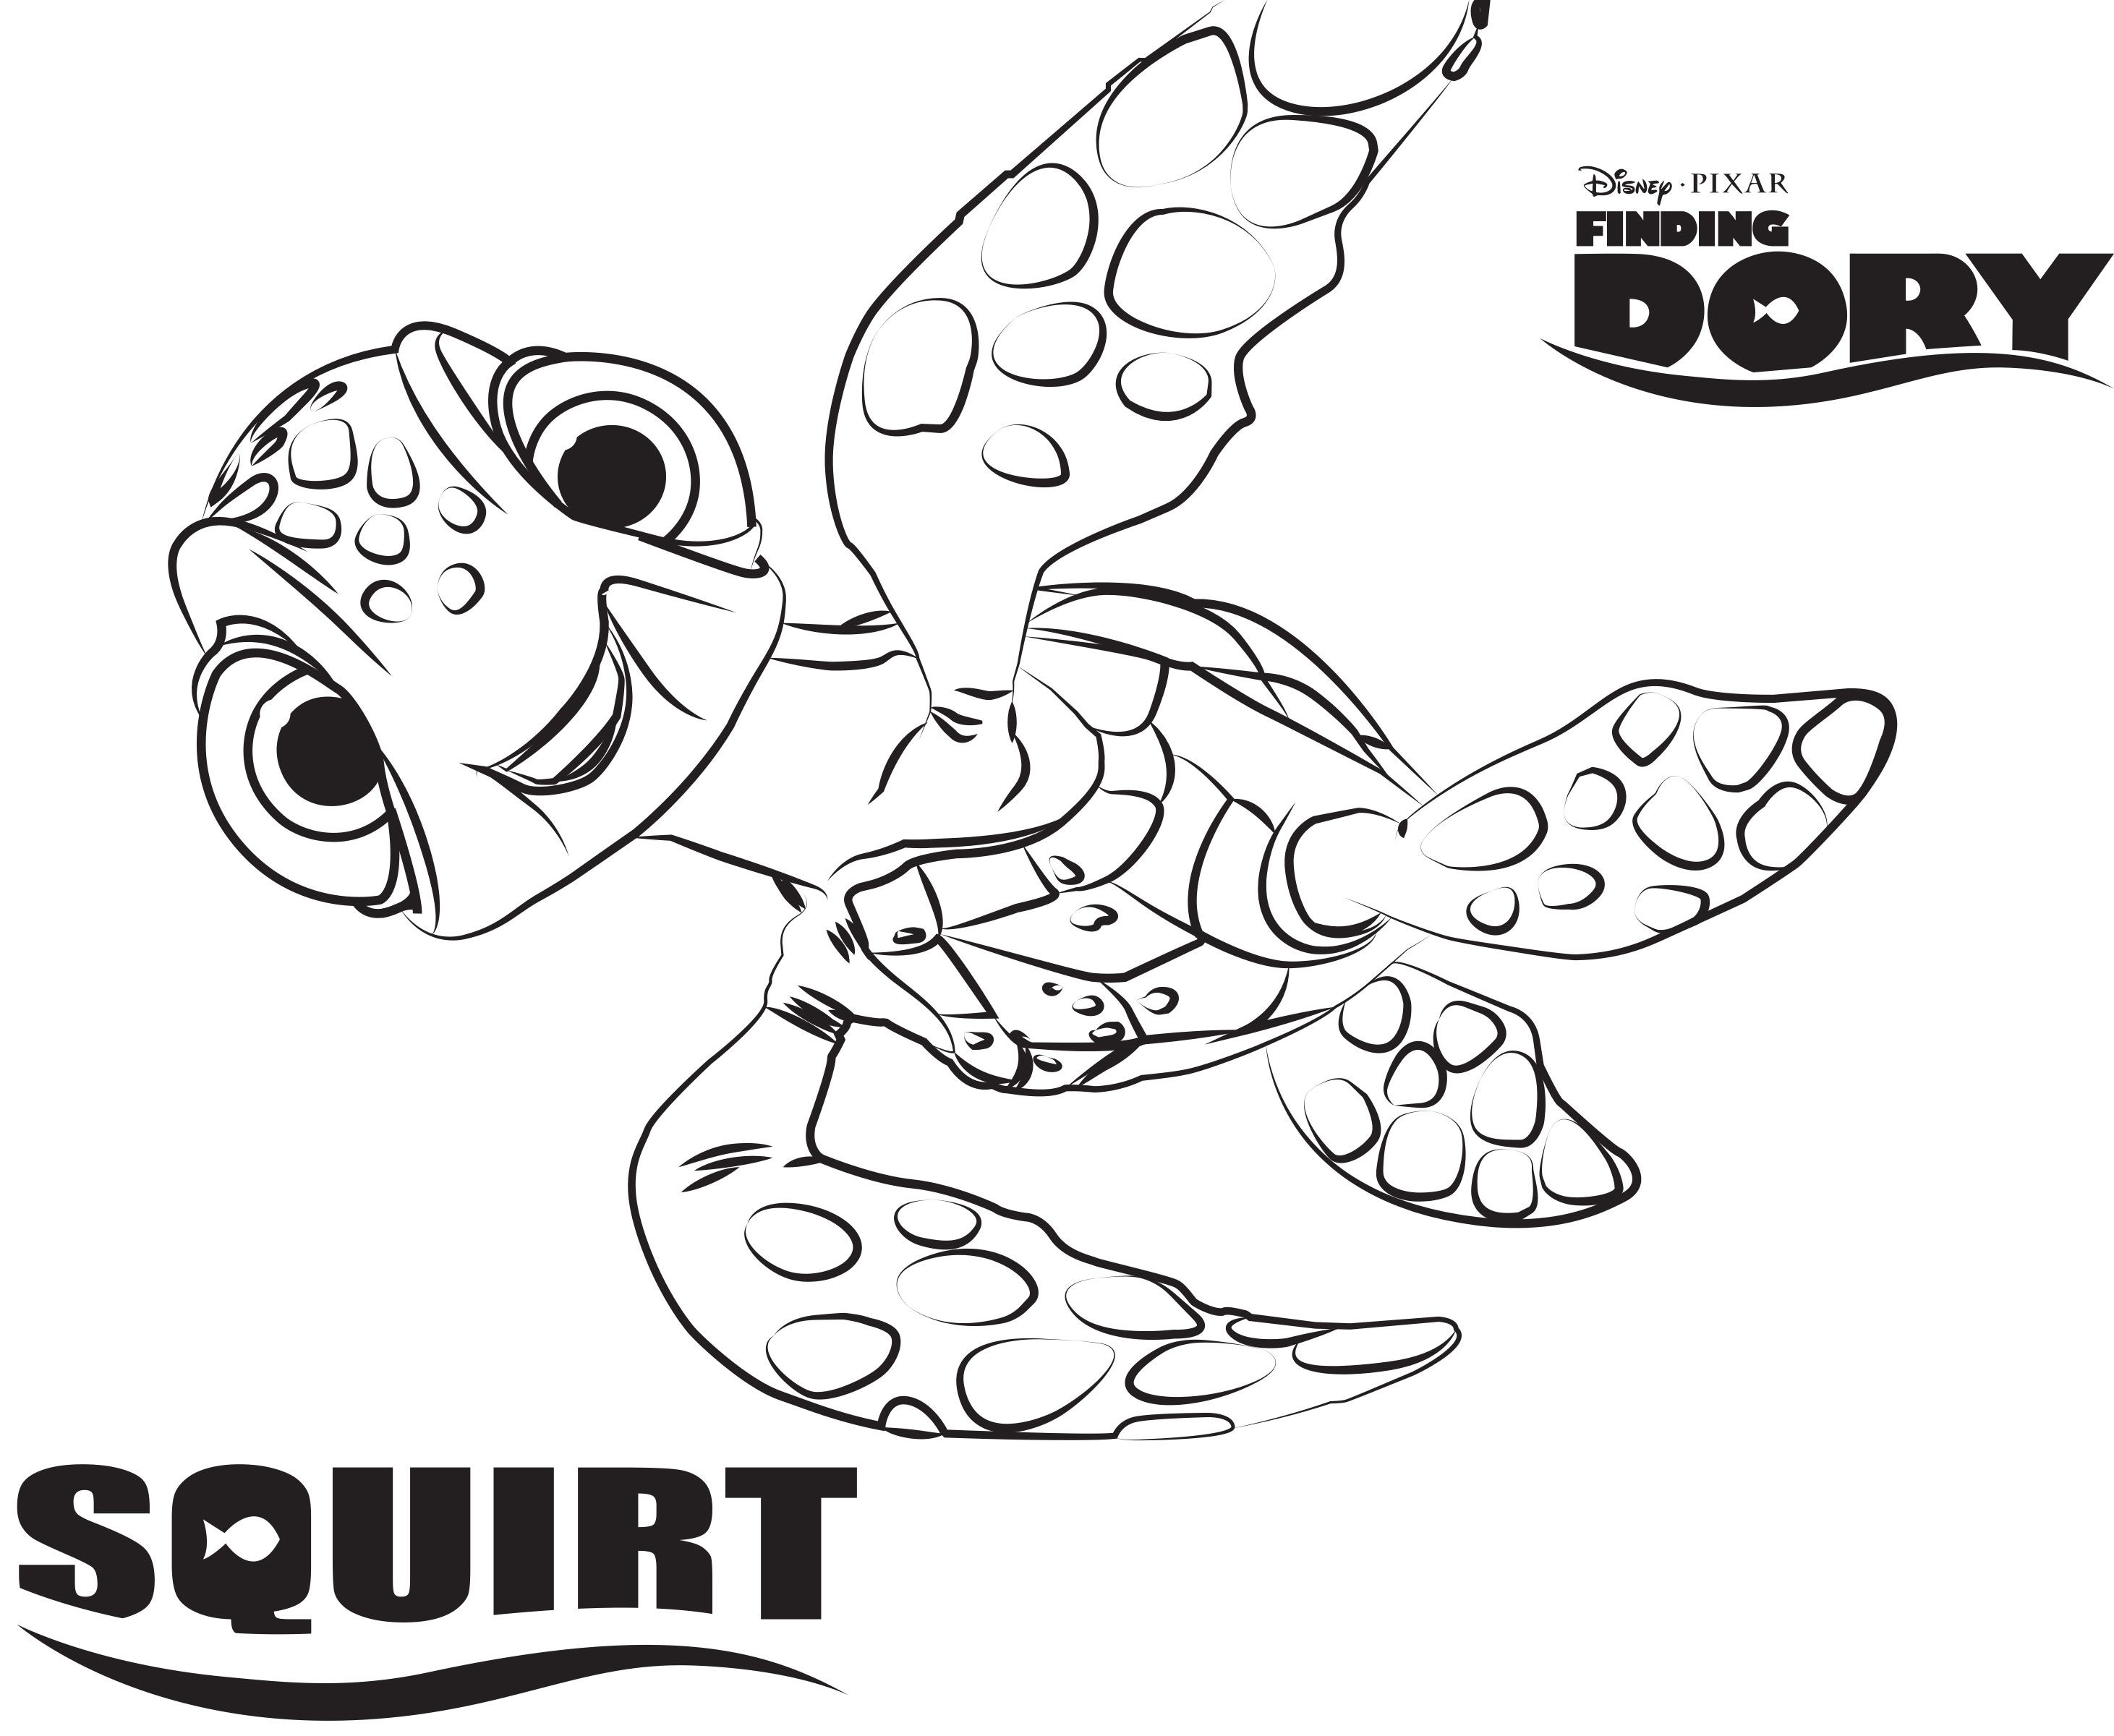 2923x2401 Disney's Finding Dory Coloring Pages Sheet, Free Disney Printable